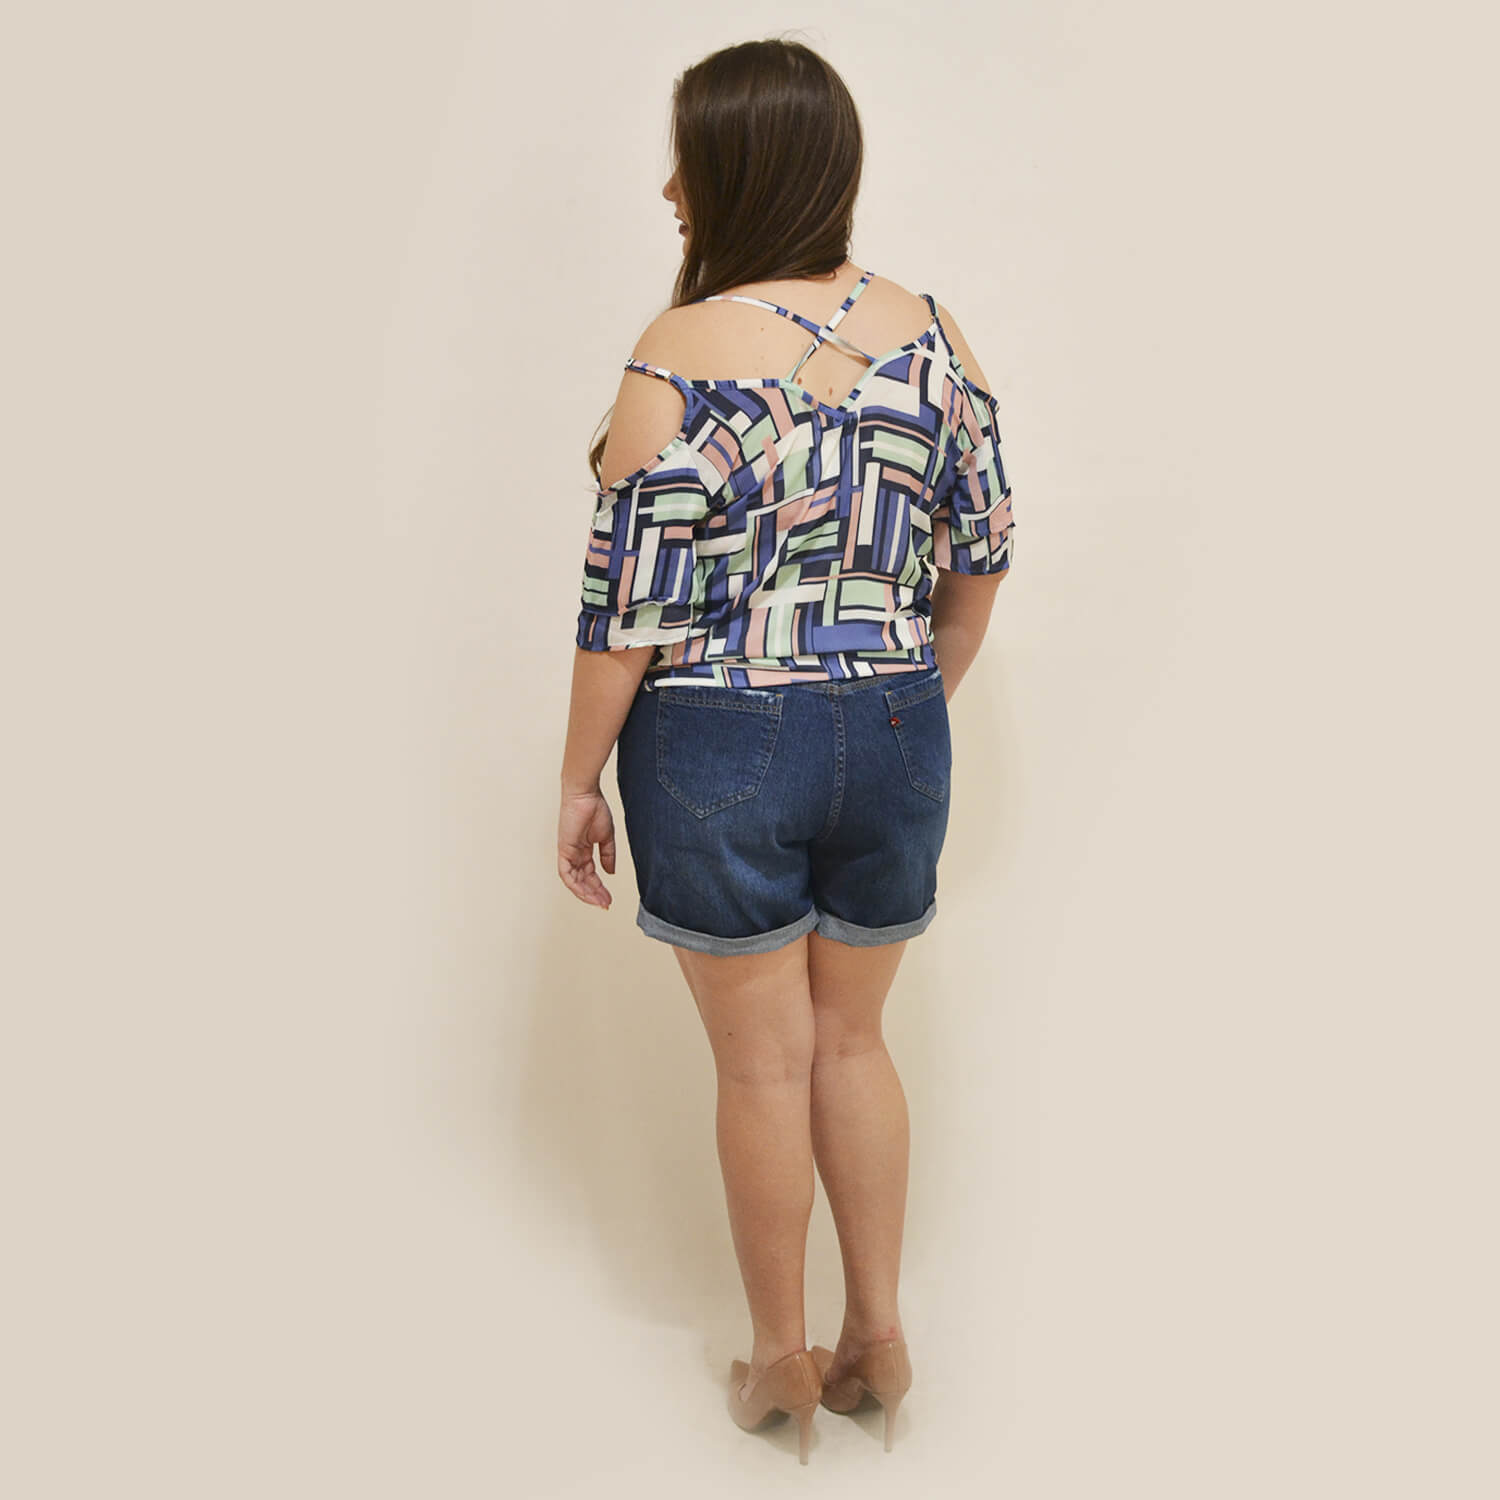 Regata Feminina Estampada Plus Size - Annual Plus